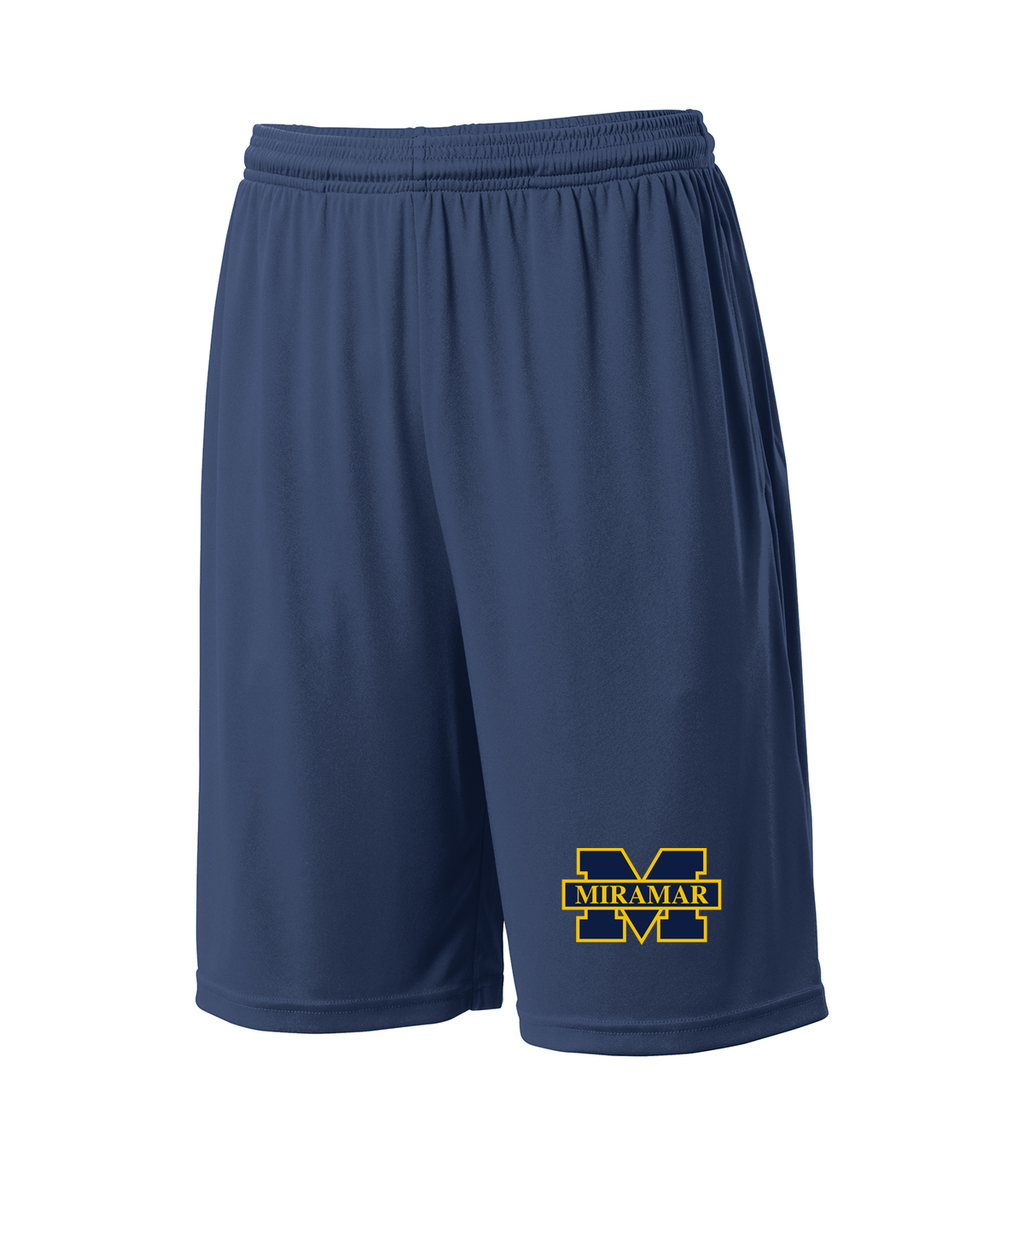 Miramar Wolverines Football Shorts